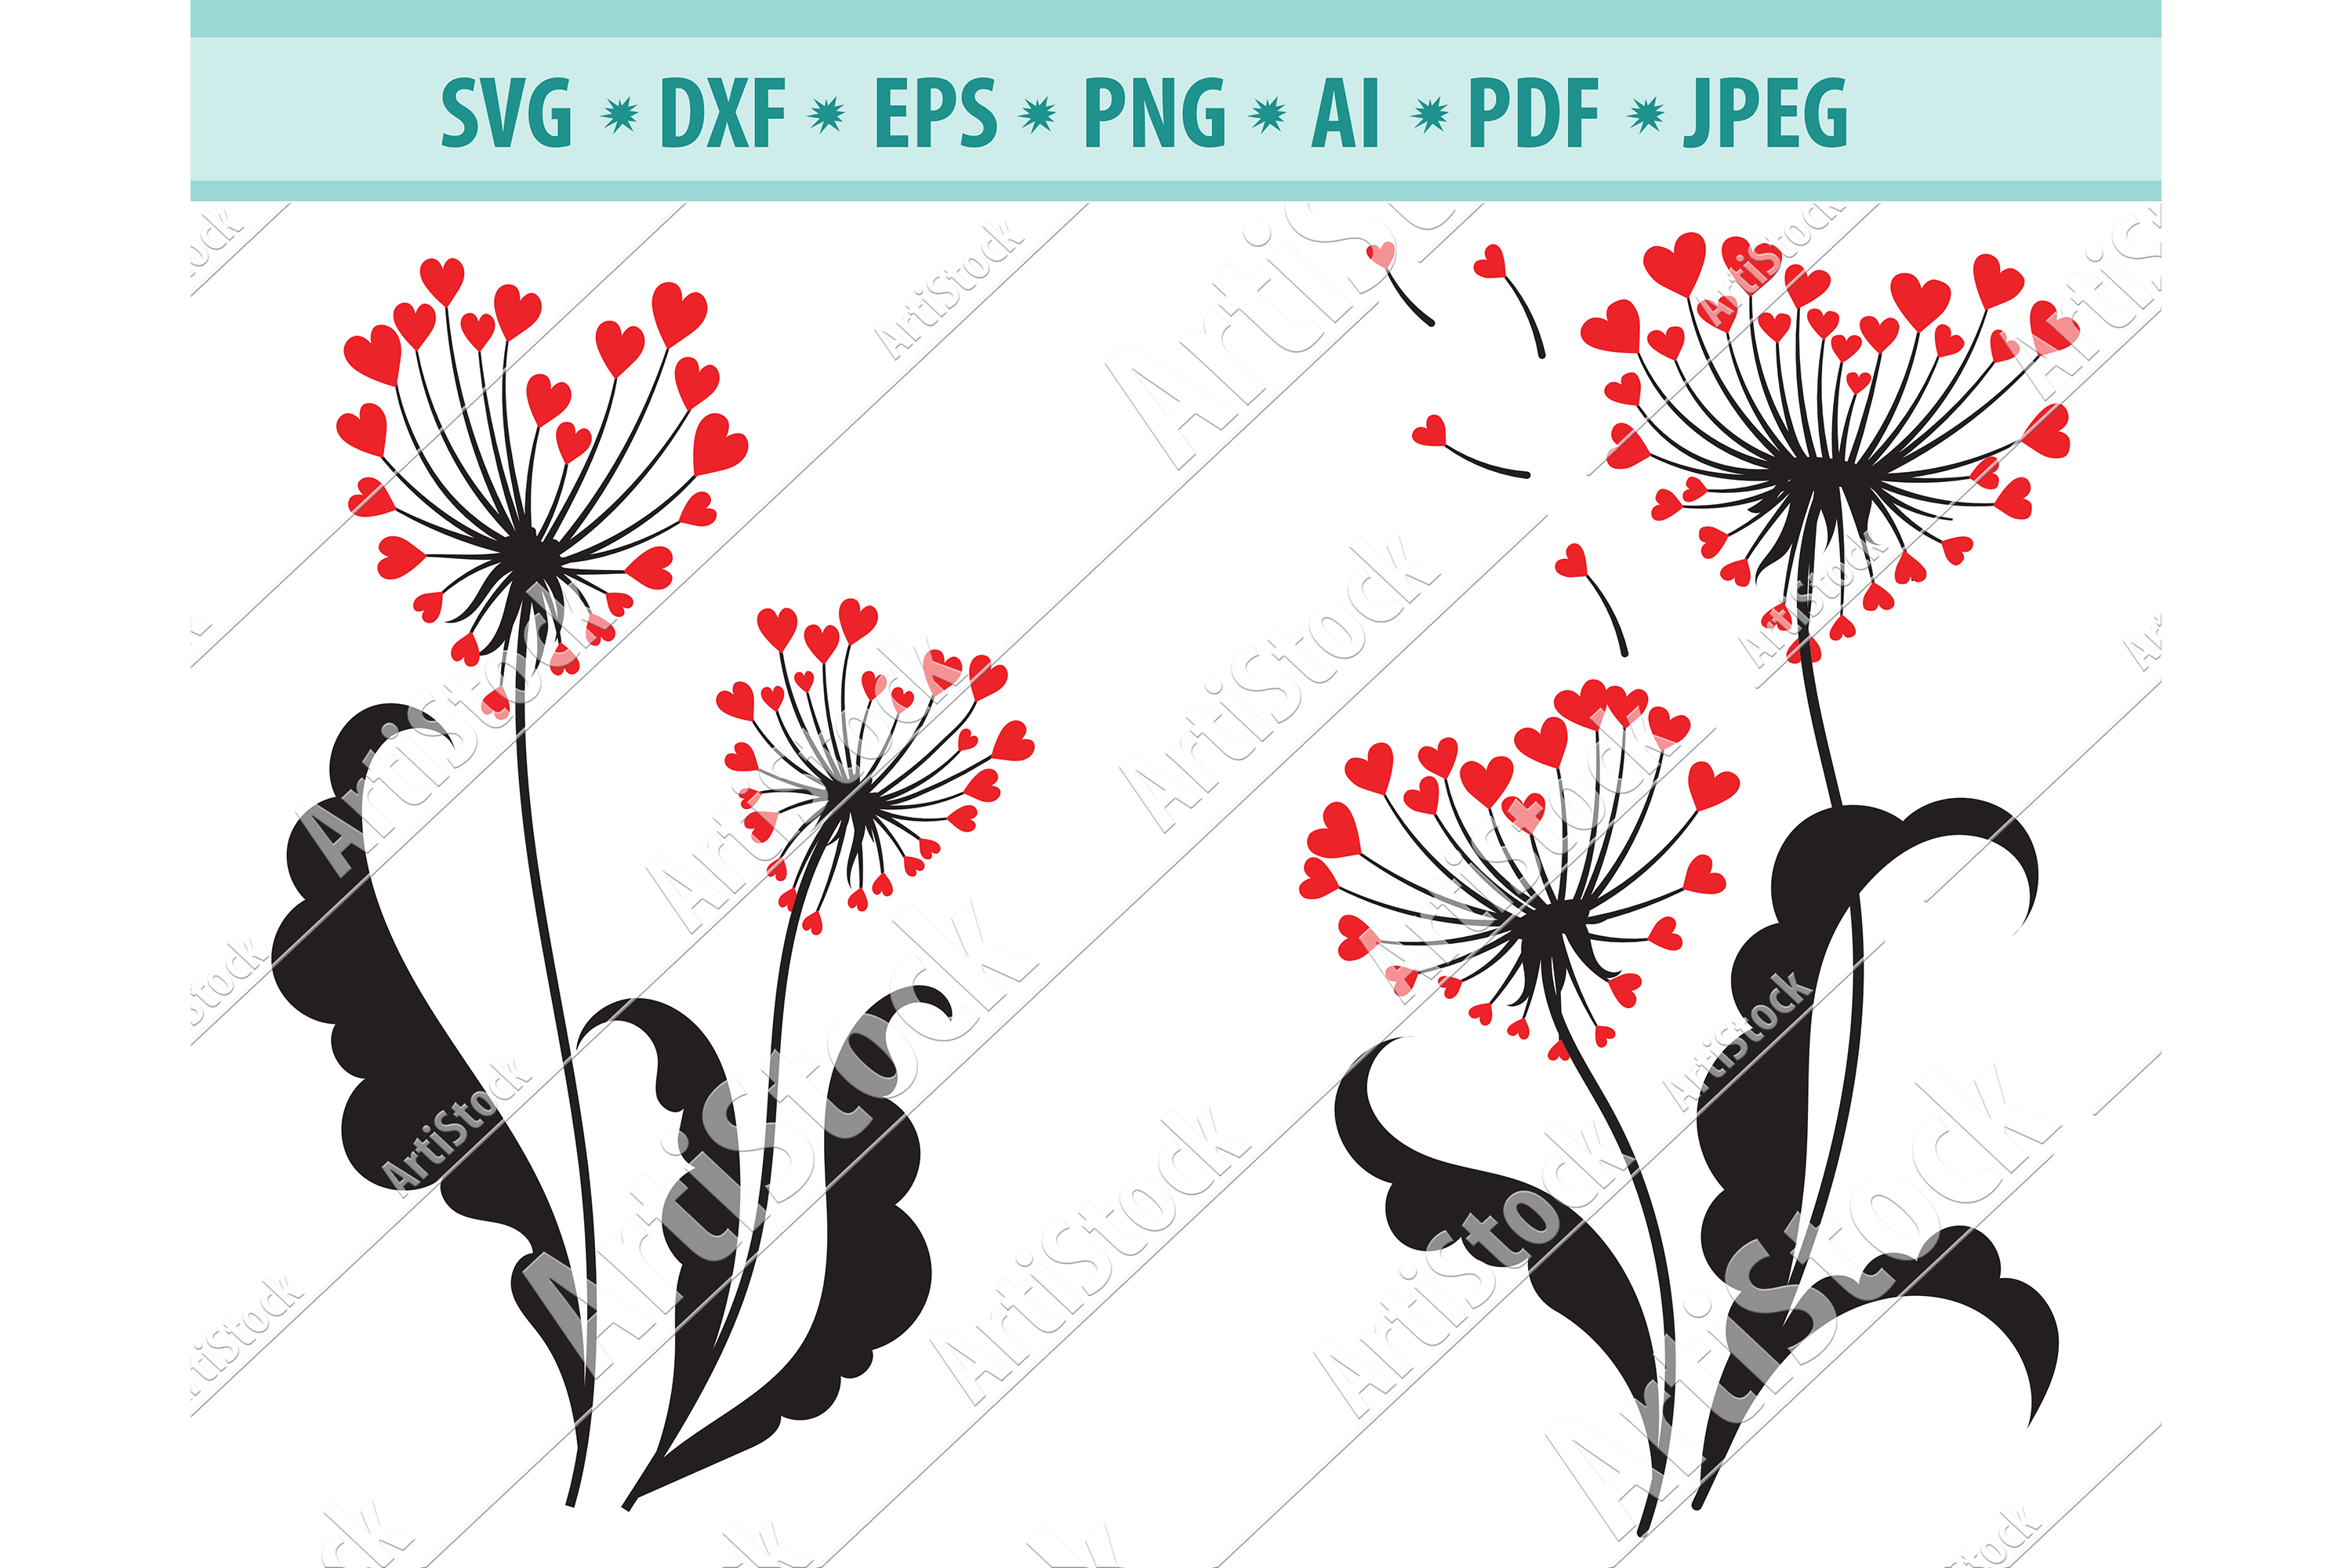 Dandelion with heart SVG, Nature Png, Garden Plant Dxf, Eps example image 1